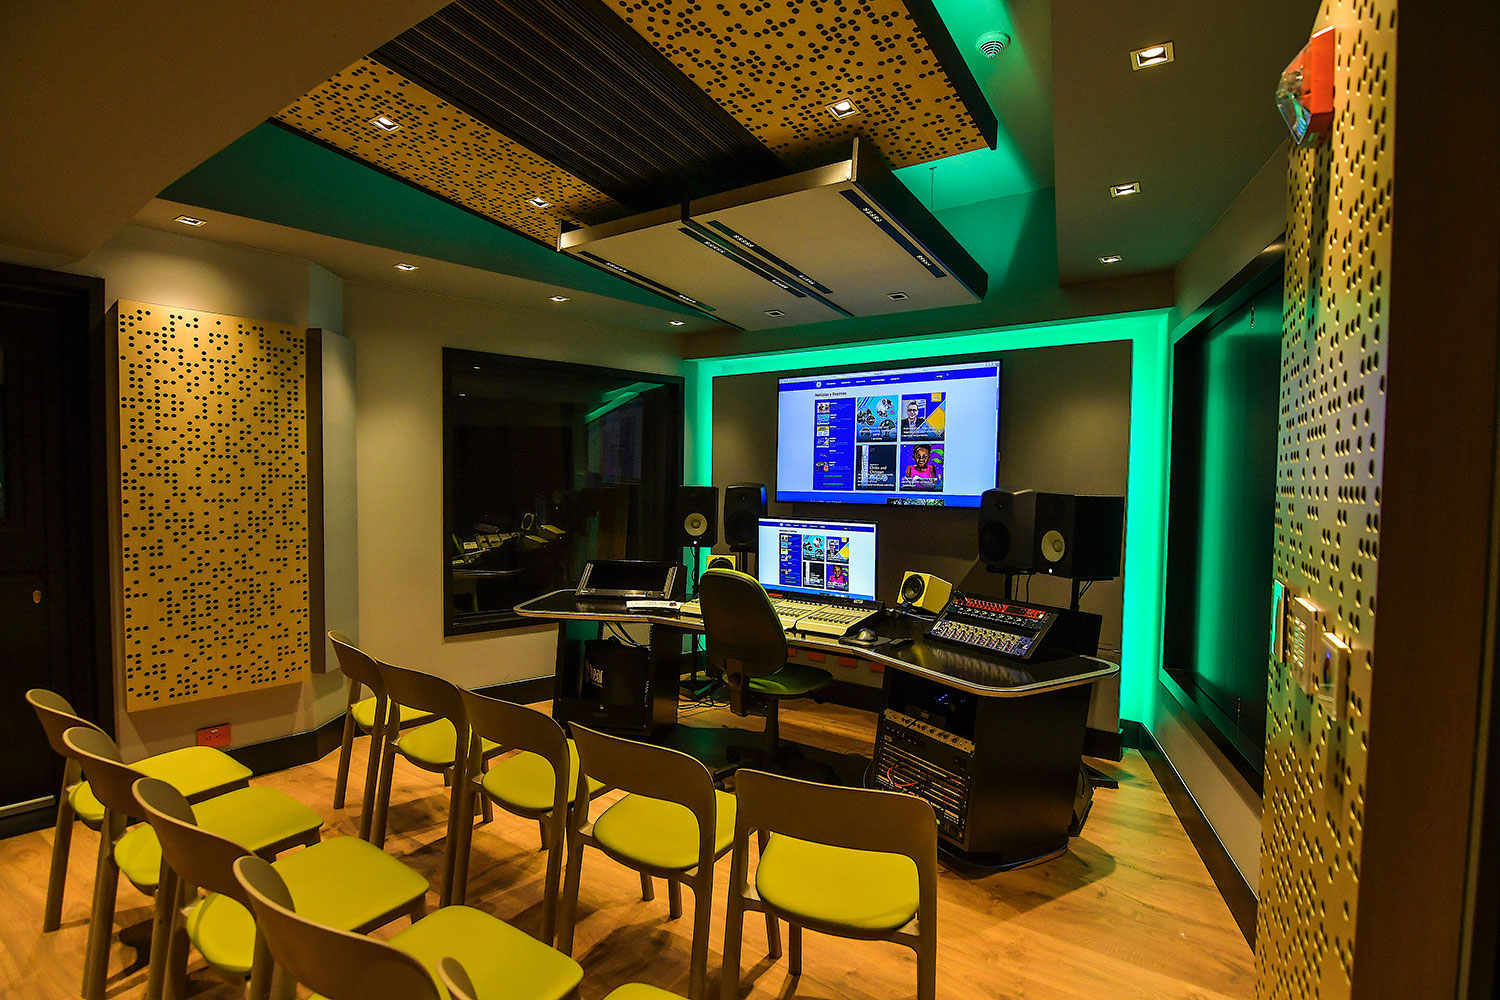 Universidad ICESI new world-class recording studio facility designed by WSDG. Control Room Medios, best studios in colombia.